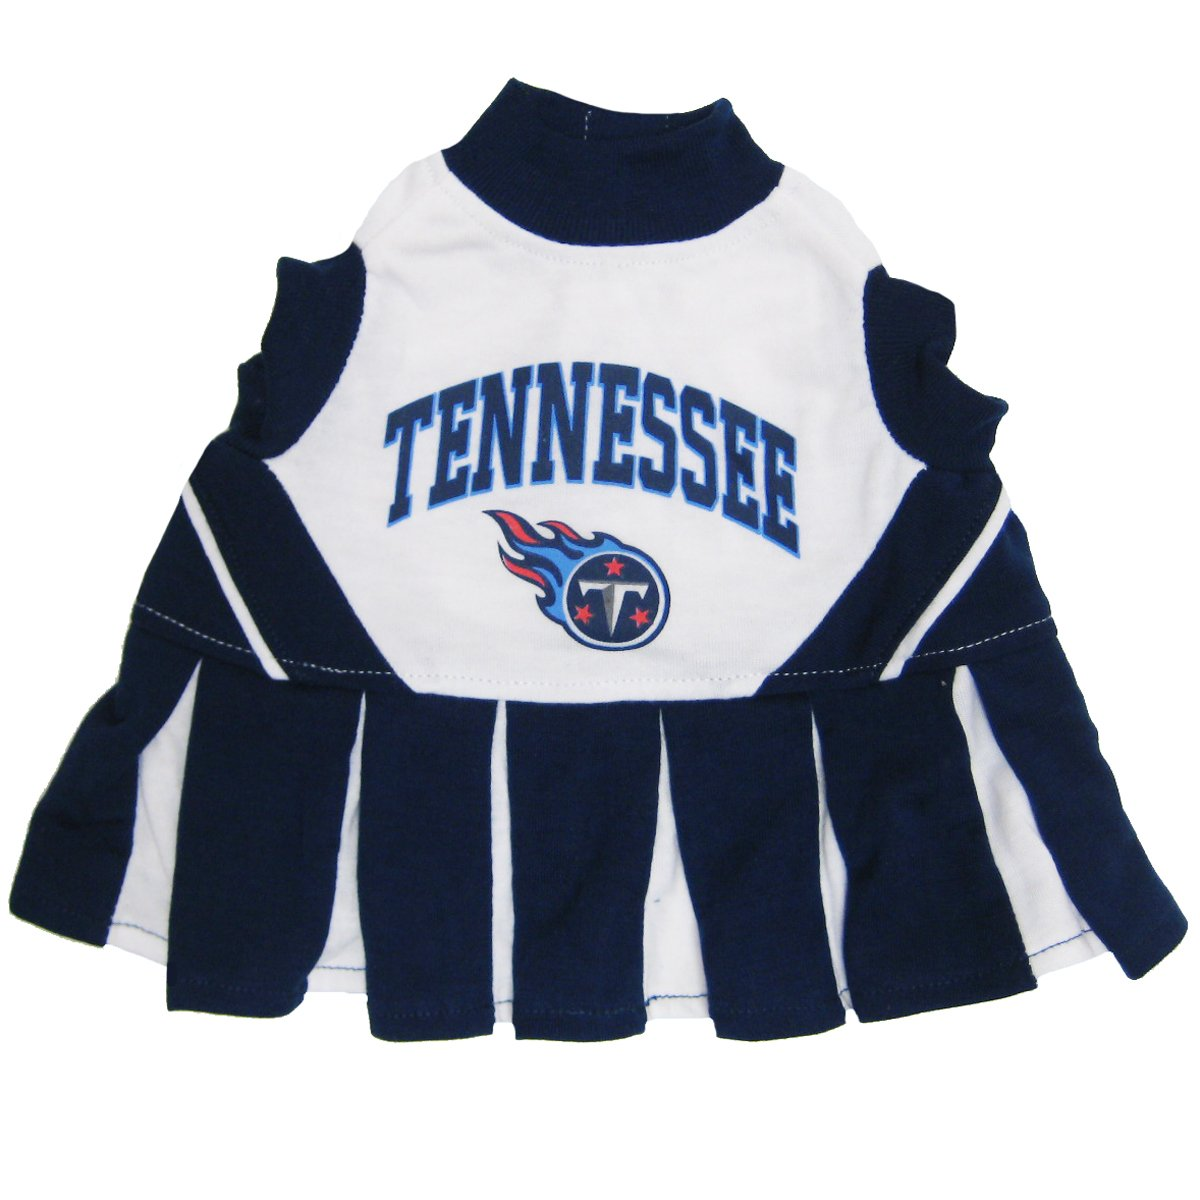 Amazon.com   Tennessee Titans NFL Cheerleader Dress For Dogs - Size Medium    Pet Supplies ea02220ae